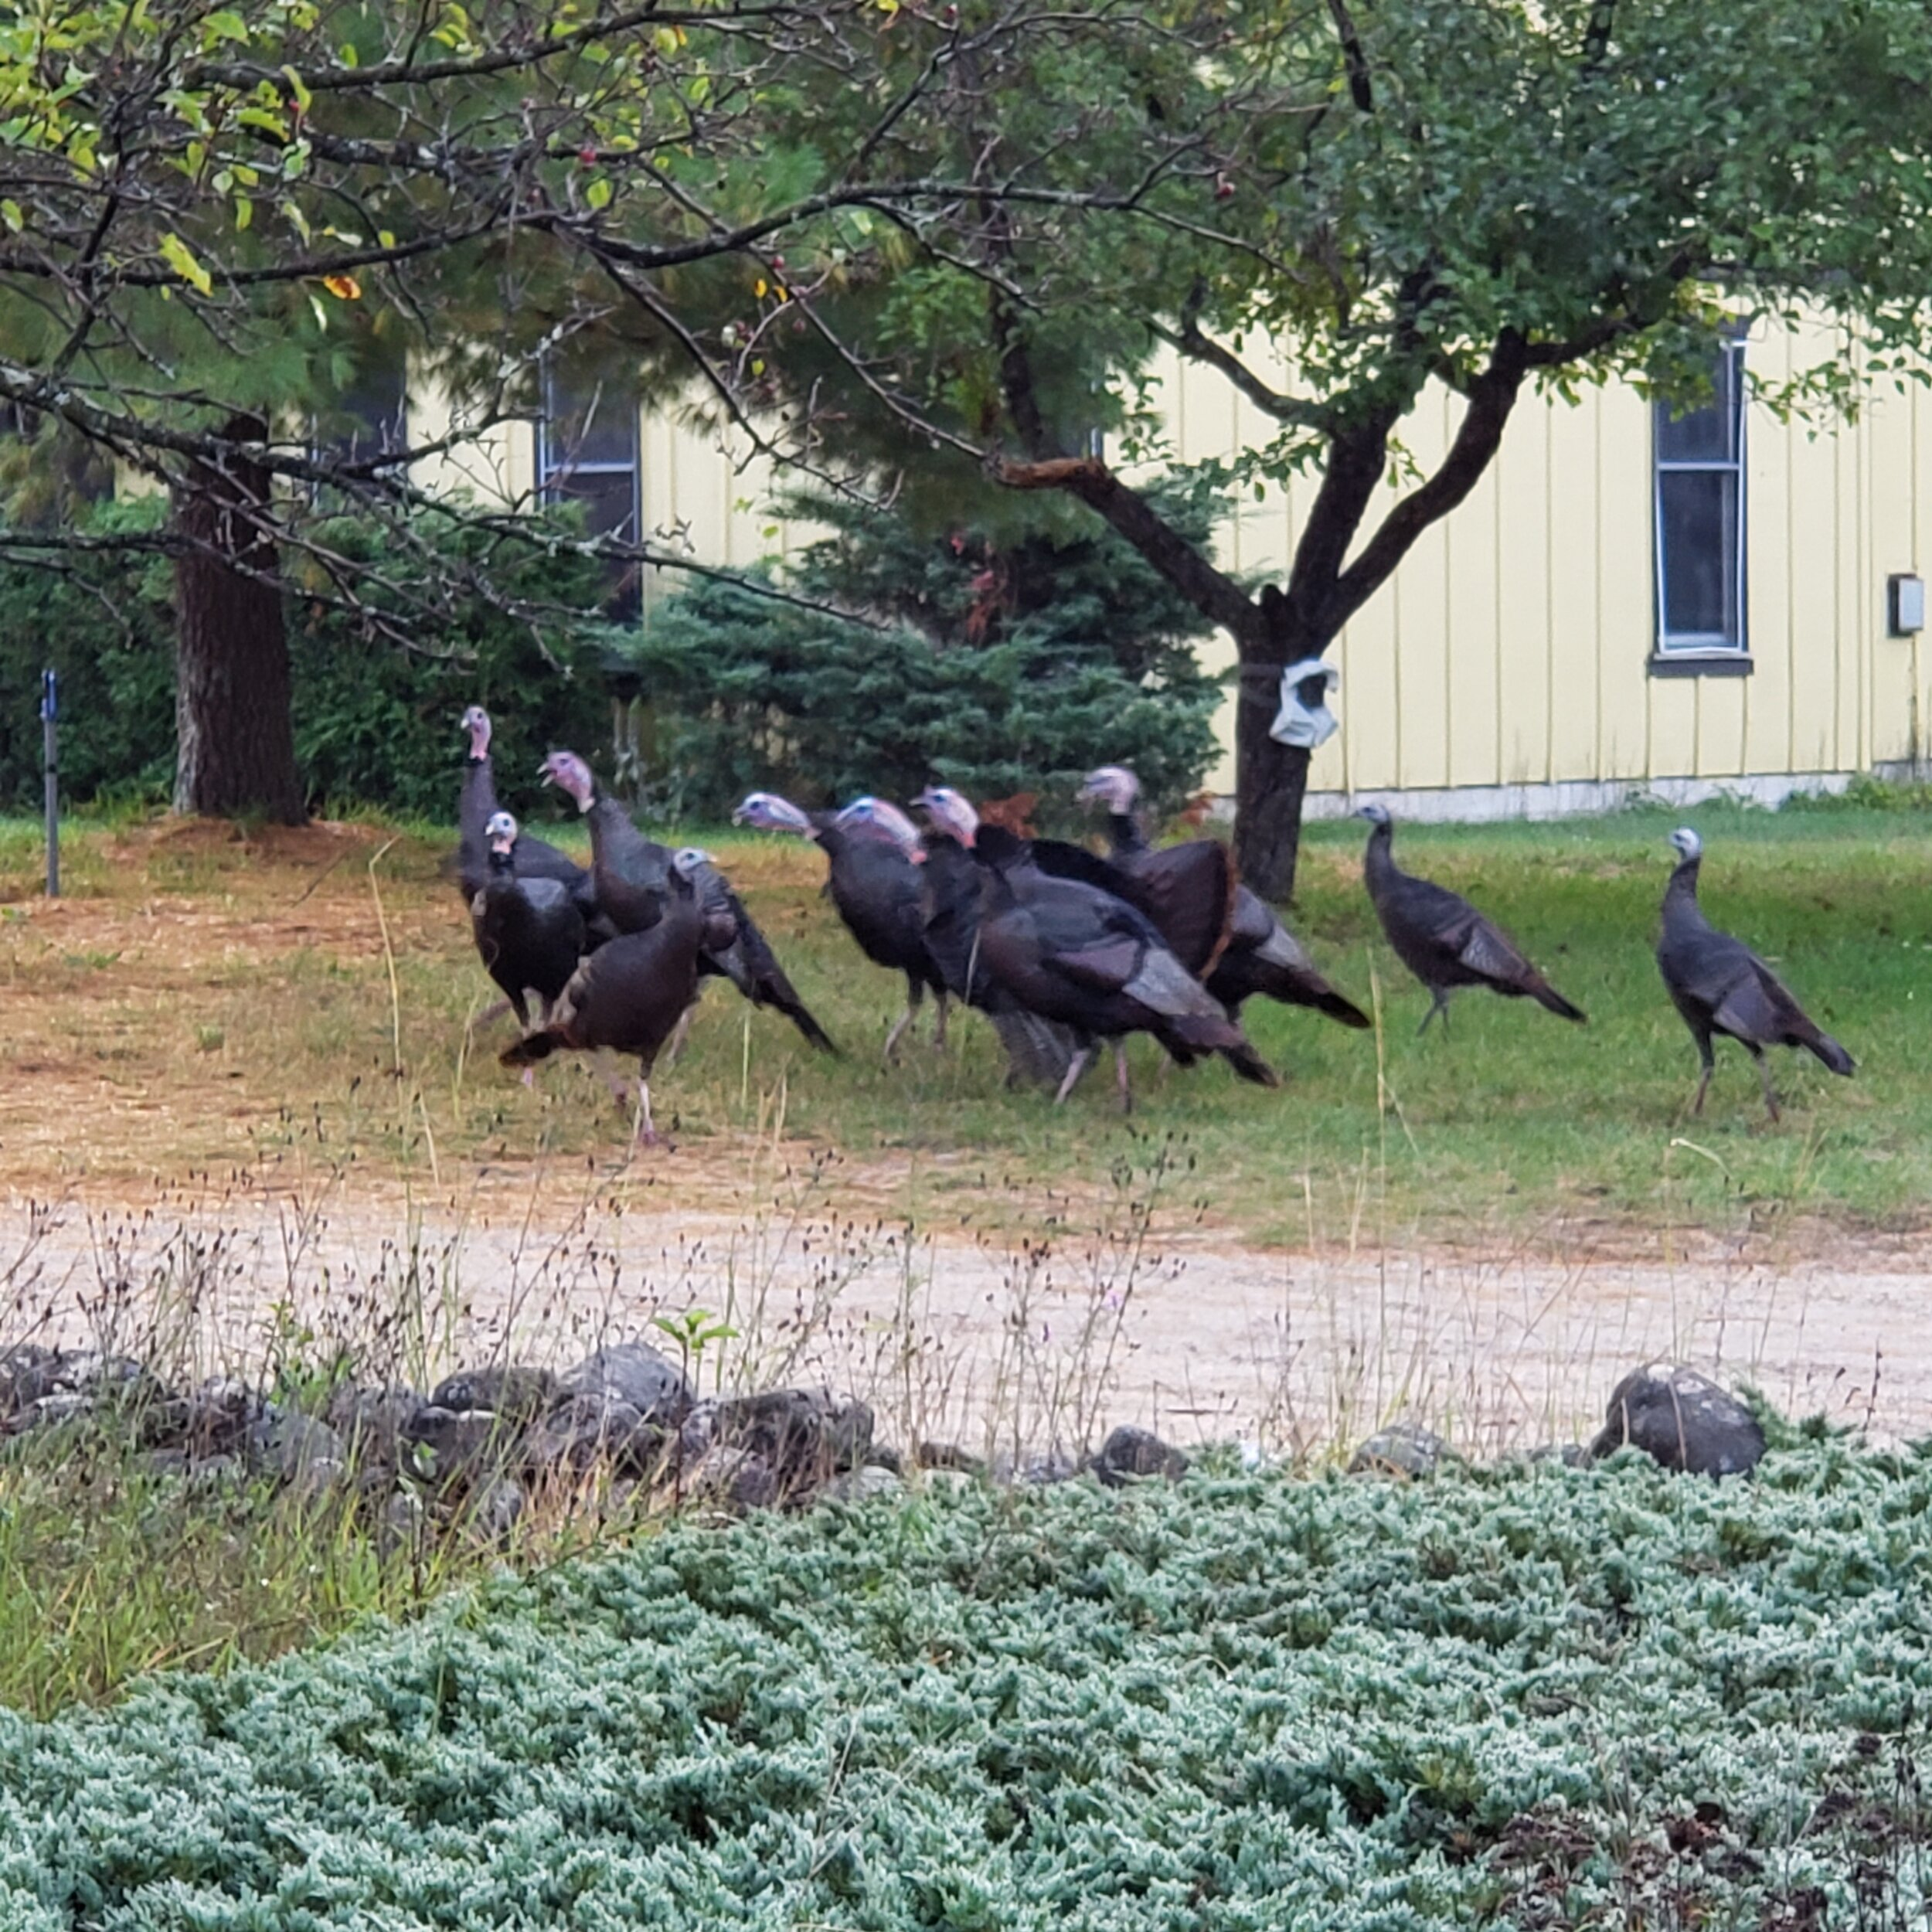 Every morning a flock of wild turkeys (11 by my count) would walk through the farm. I have never seen so many wild turkeys at once. I love the way they would wonder, a few going this way and a few going that way, but in the end, they all stayed together. This reminded me of our intimate retreat. It was a smaller retreat of only 80 women and I loved the small size as I got to visit with a lot of women and make some real connections. Some of us would go off and try out the napkin technique in our Bibles ( thanks Val) and others would go for walks. The retreat was a great time for connections. We all were there to further explore our visual faith in one way or another which made it a safe place to share what was on our hearts, whether that be victories or struggles. It was a very affirming time.